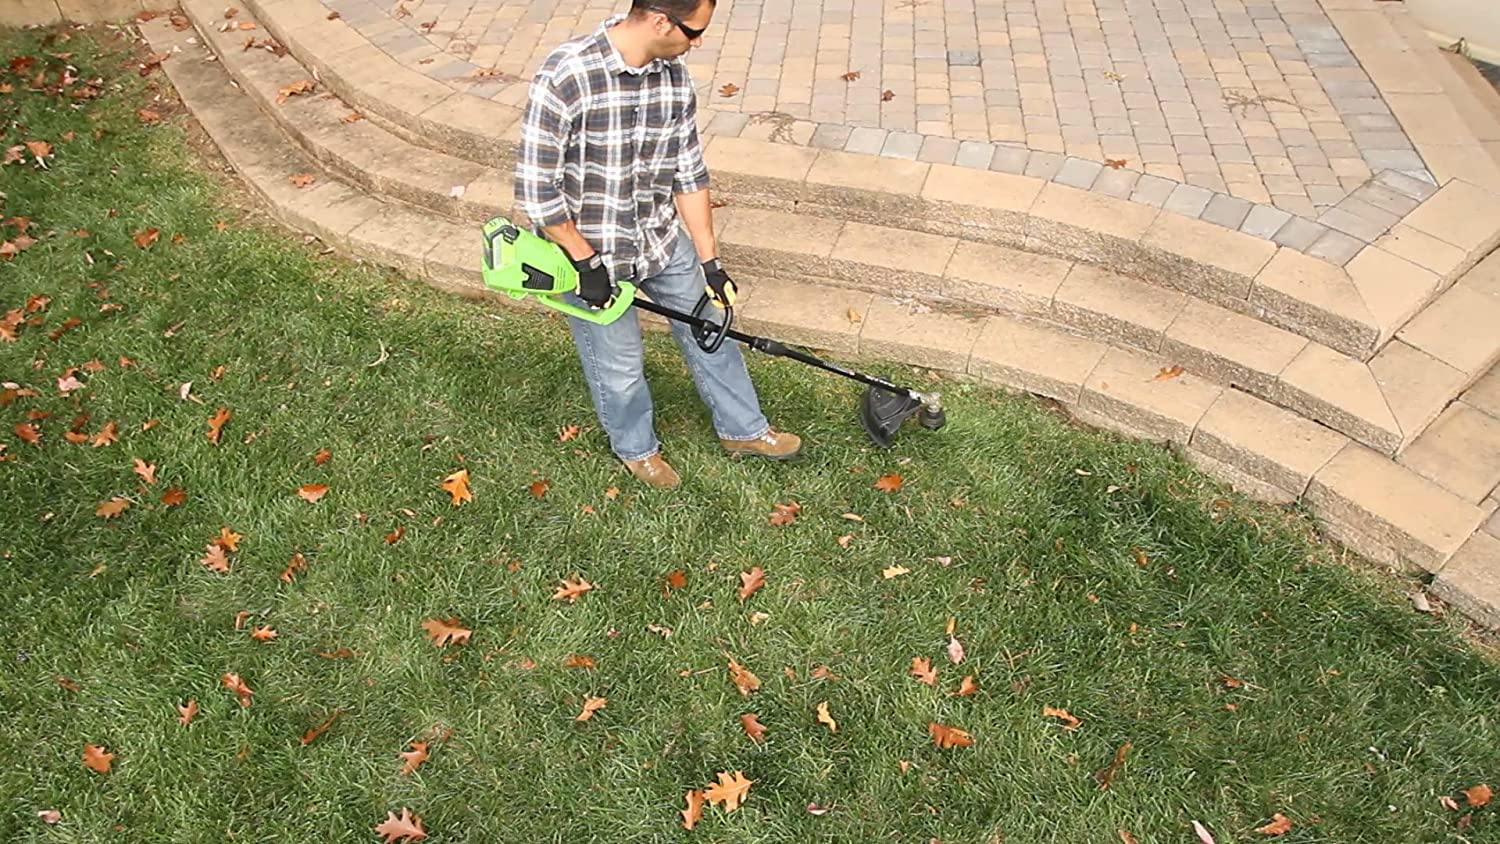 all bloggers den - Grass Trimmer